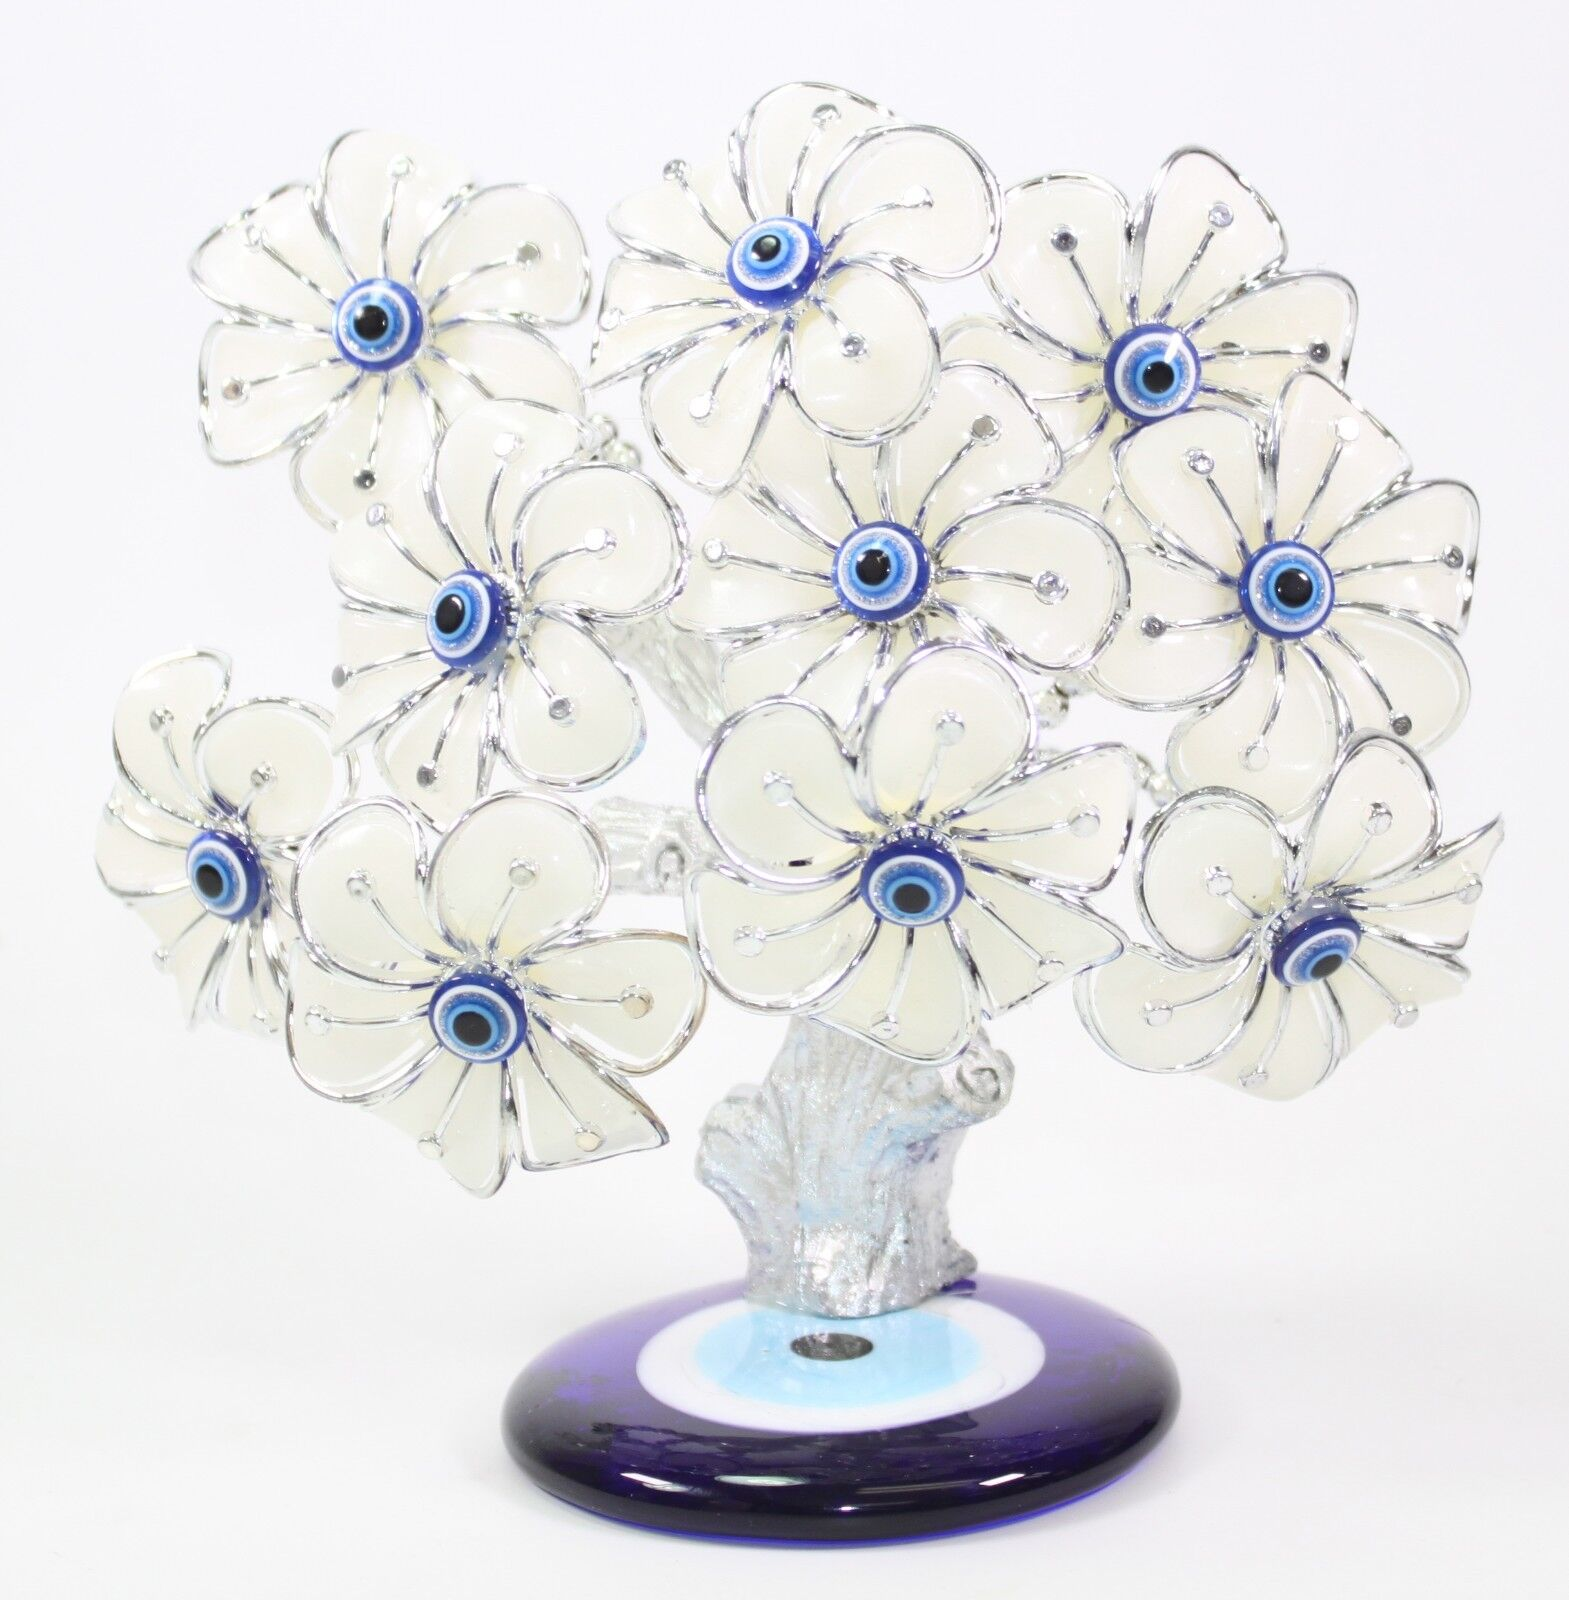 Details about Turkish Blue Evil Eye White Flowers Money Fortune Tree  Protection Good Luck Gift